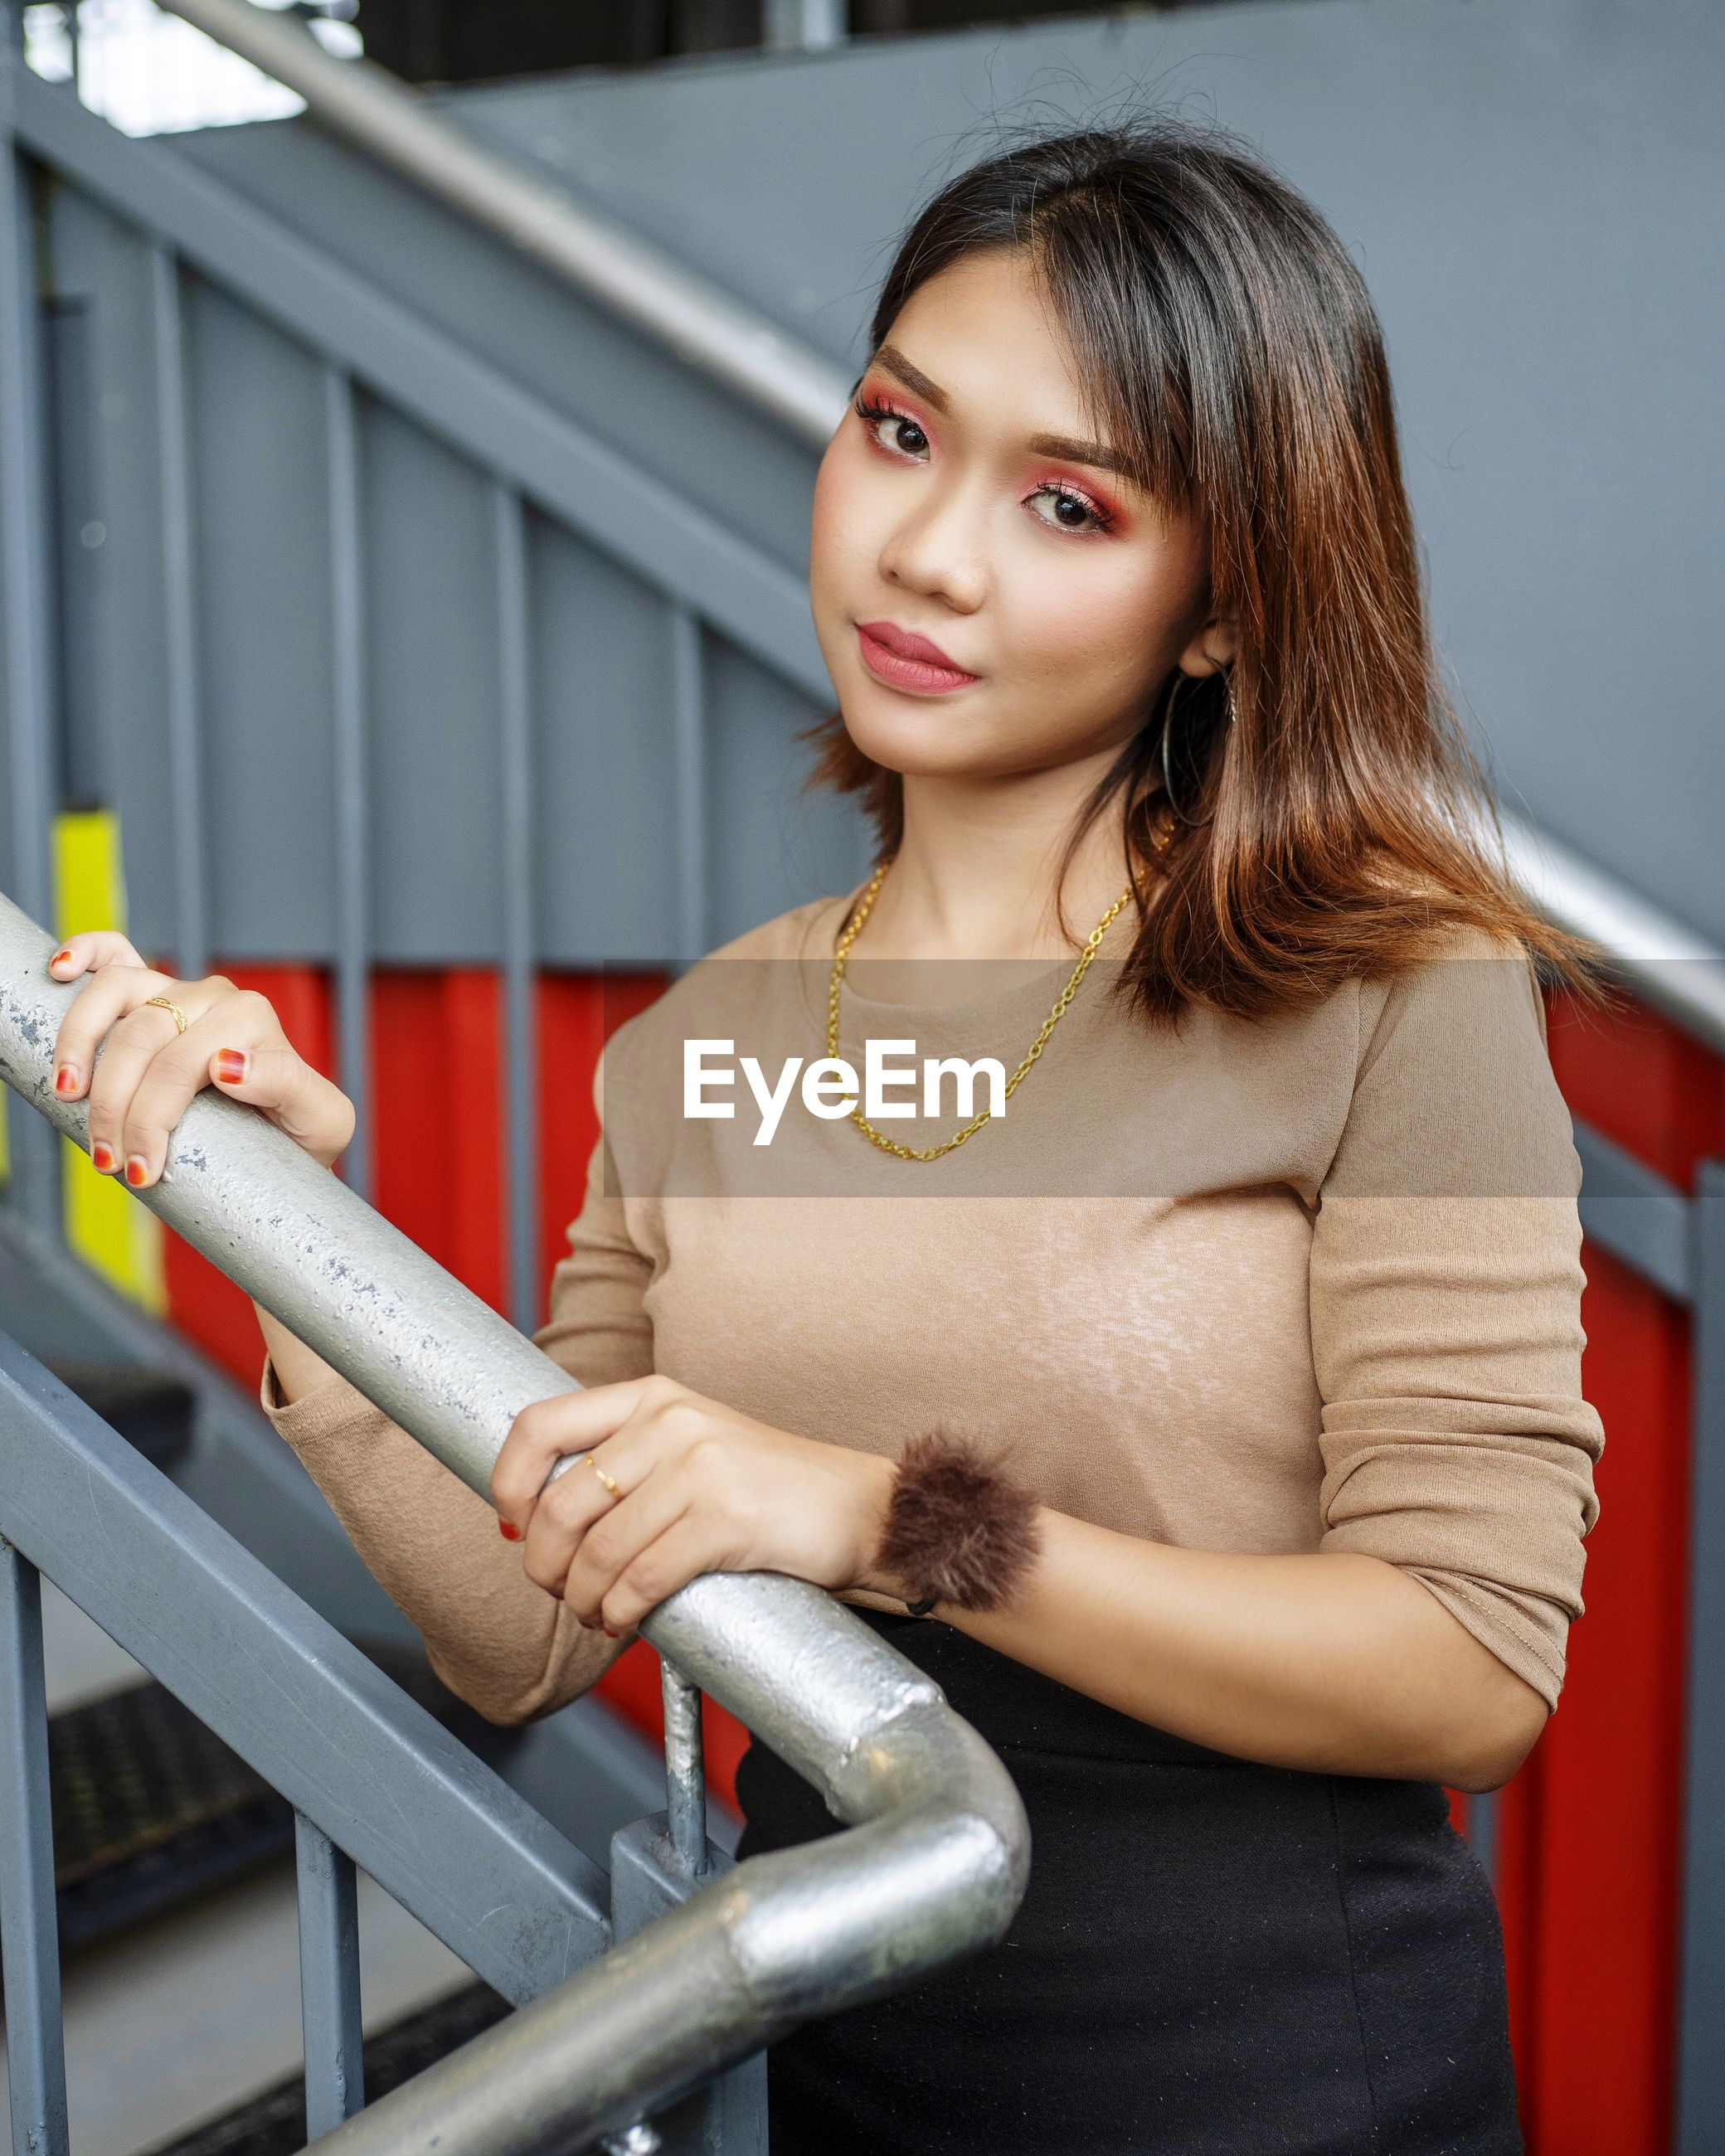 PORTRAIT OF SMILING YOUNG WOMAN STANDING BY RAILING